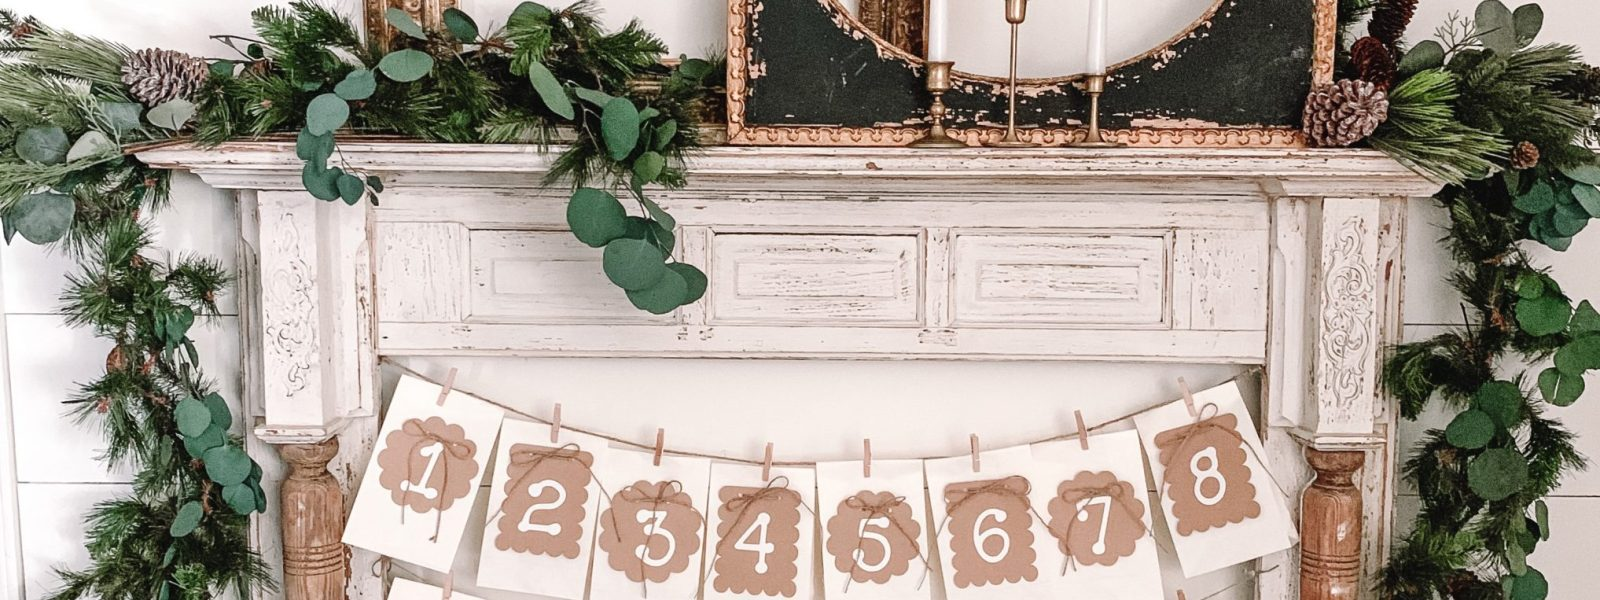 55 Advent Calendar Ideas for Kids Of All Ages